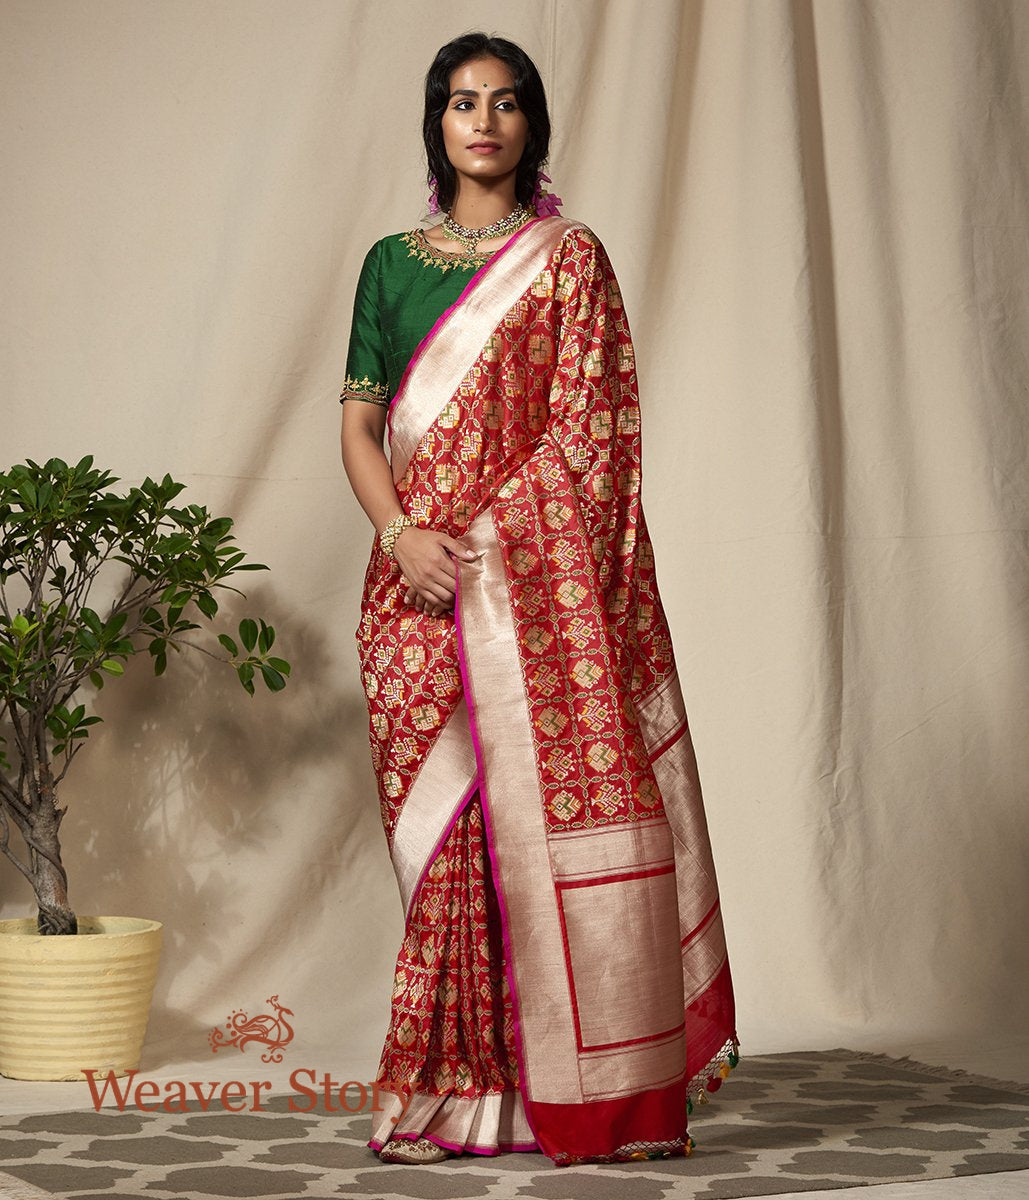 Handwoven Red Meenakari Banarasi Patola Saree with Pink Selvedge